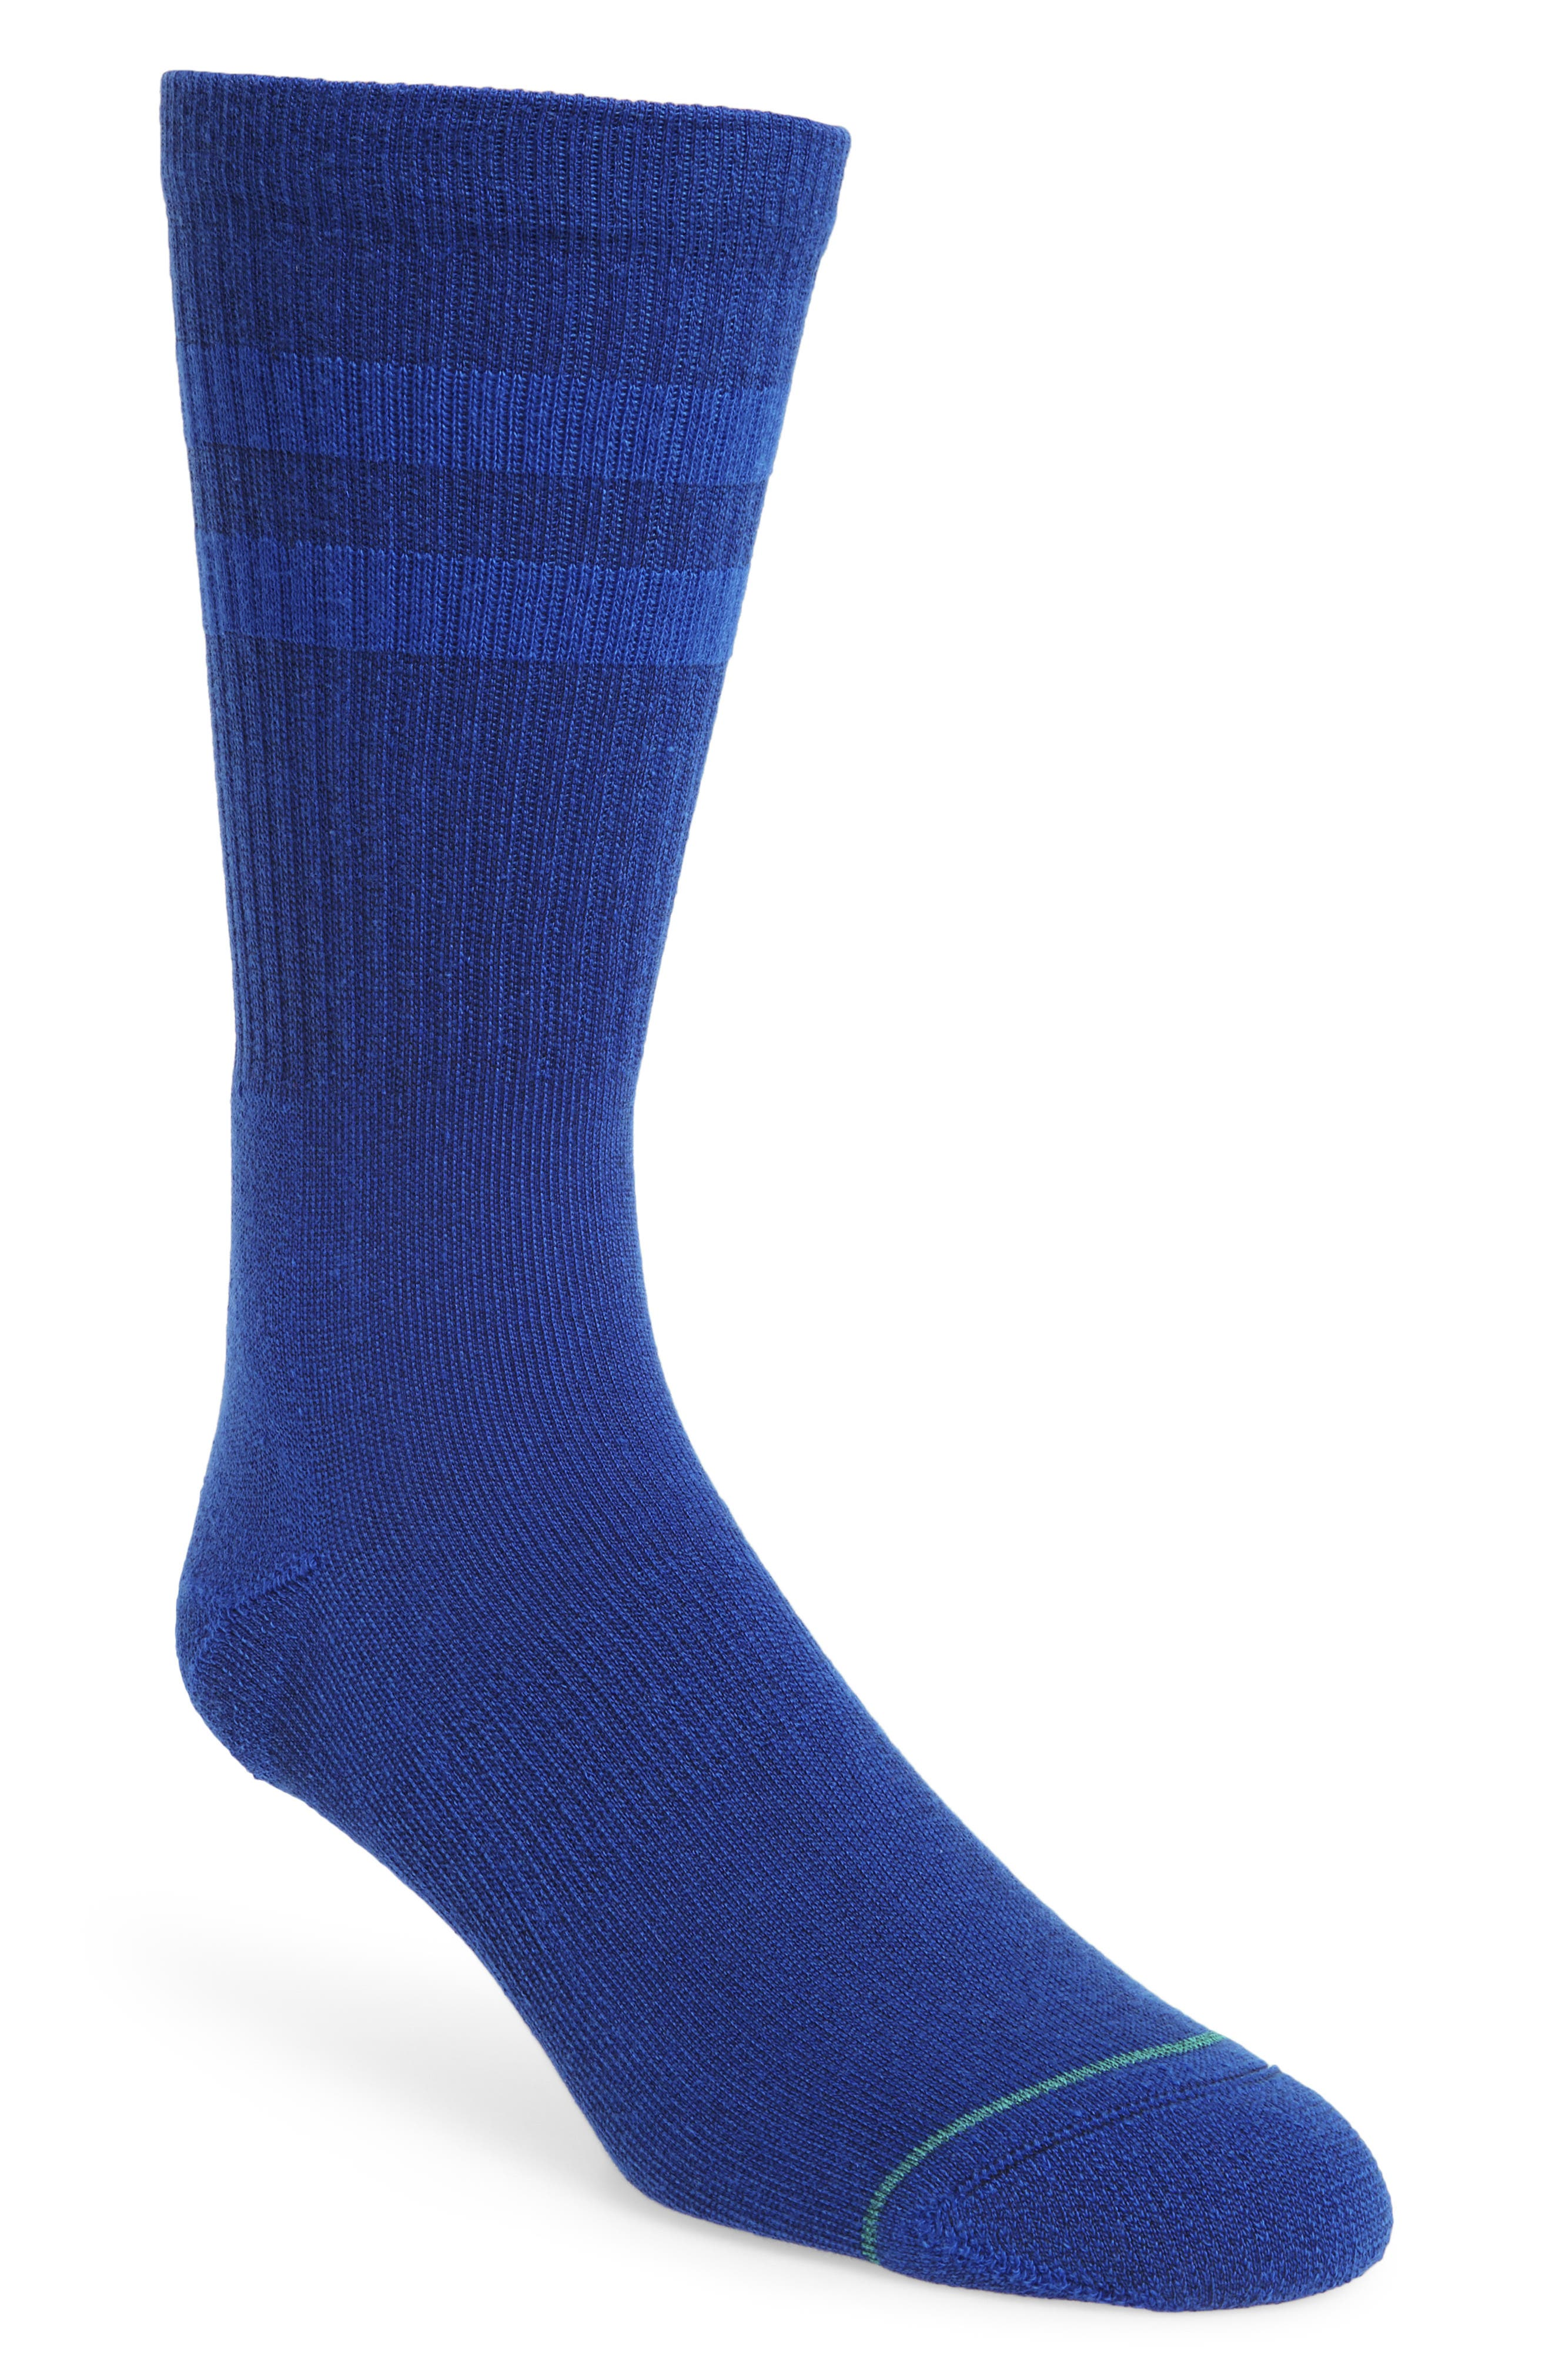 Joven Classic Crew Socks,                         Main,                         color, Primary Blue